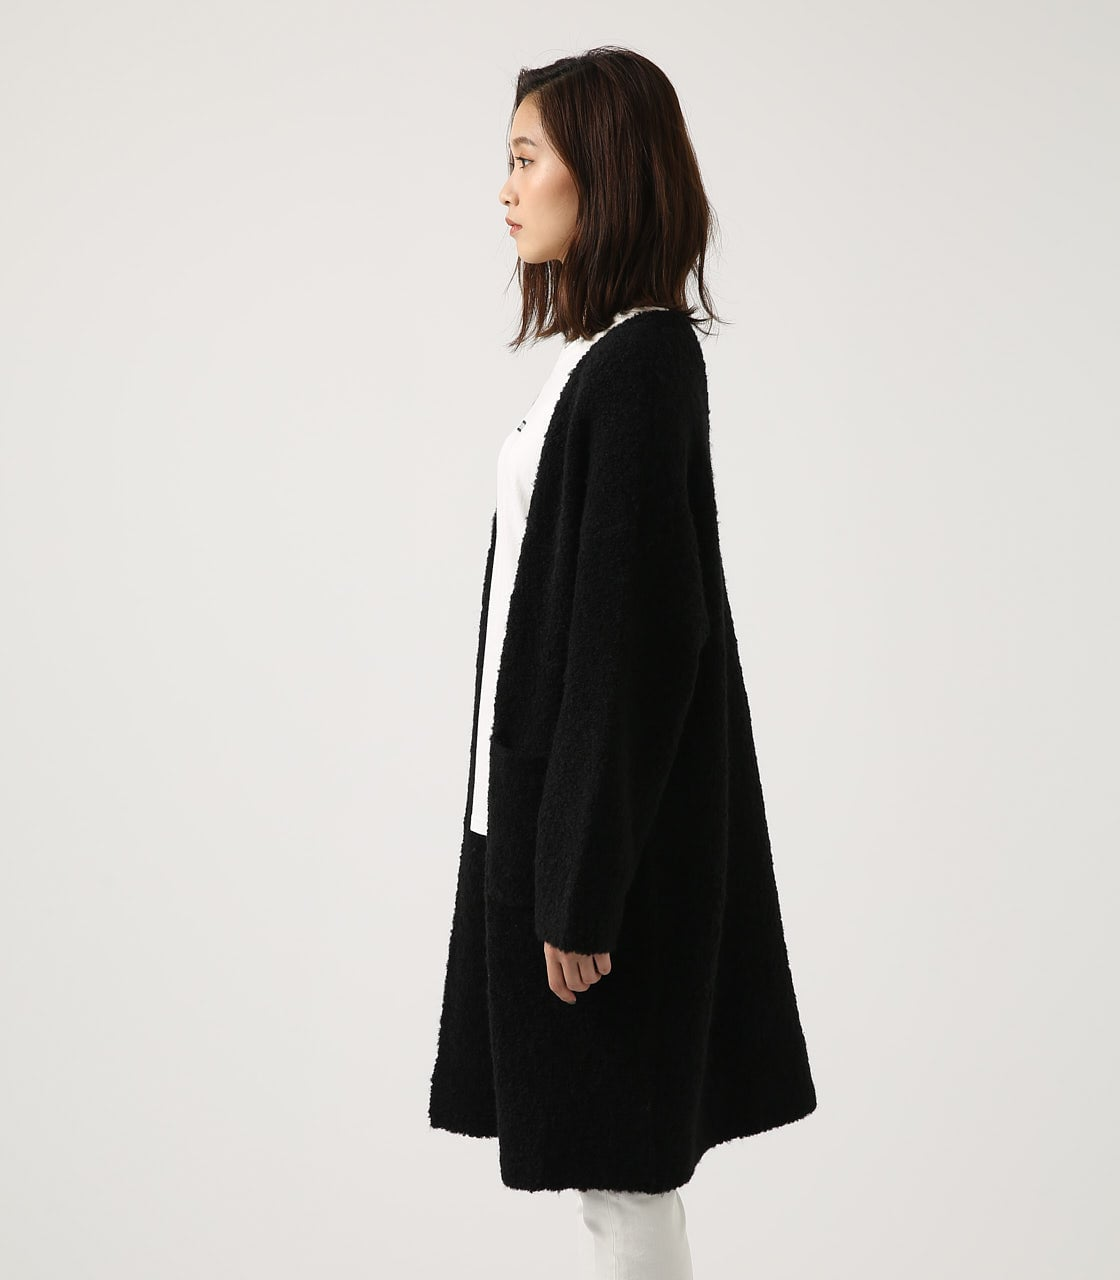 【AZUL BY MOUSSY】ブークレロングカーデ 詳細画像 BLK 6